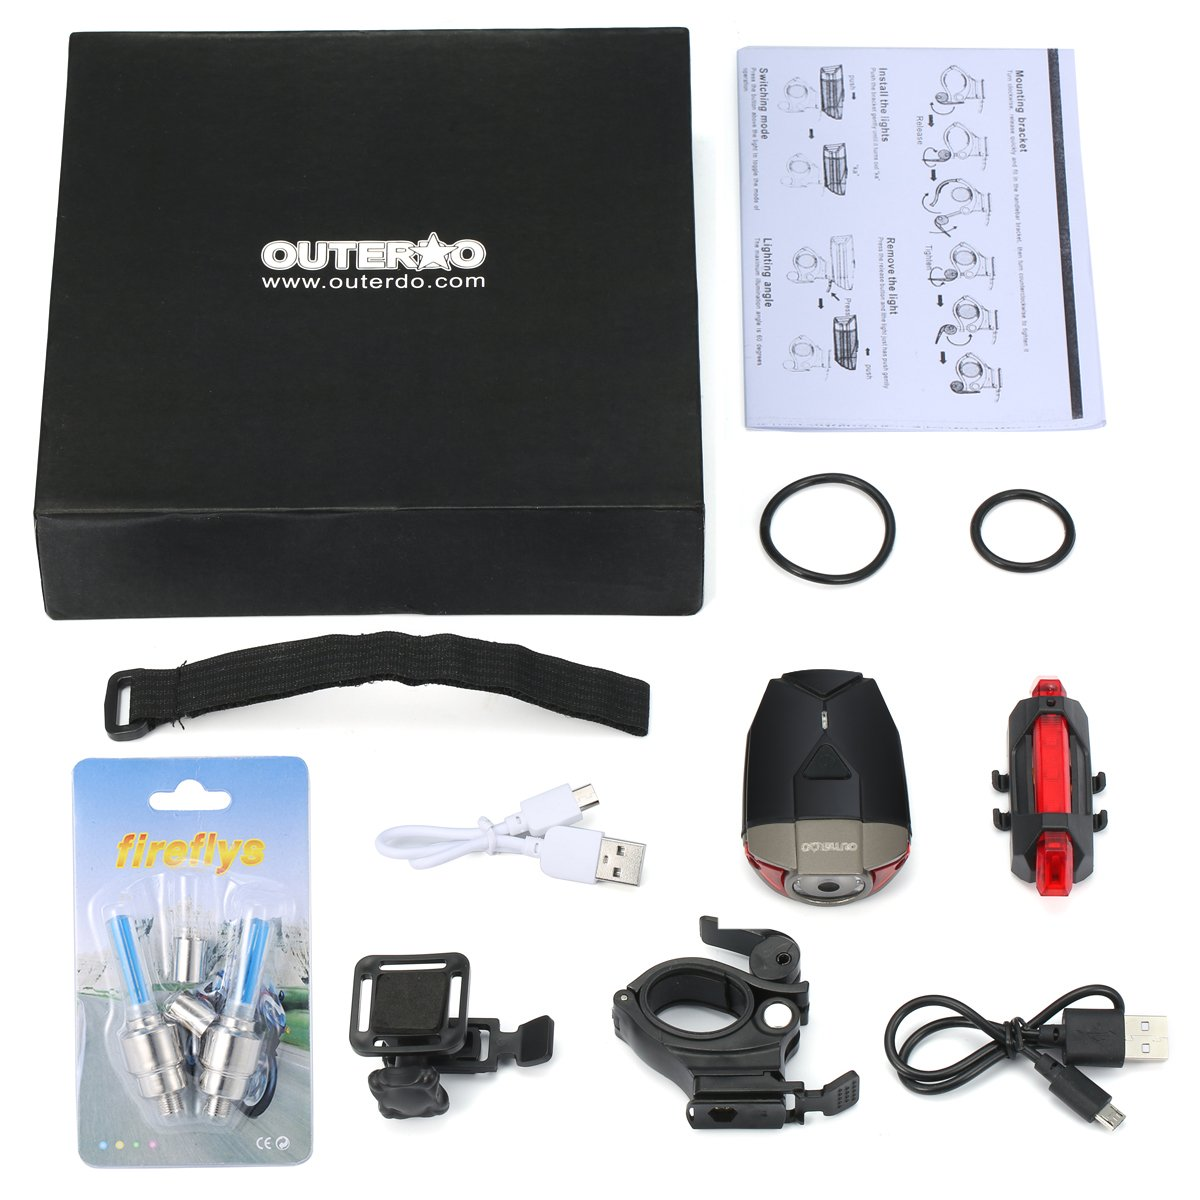 OUTERDO USB Rechargeable Bike Light Set 3-Mode 300 Lumens Super Bright Waterproof Power Saving Bike Headlight with Red Rear Light for Easy Installation /& Safe Cycling at Night Black